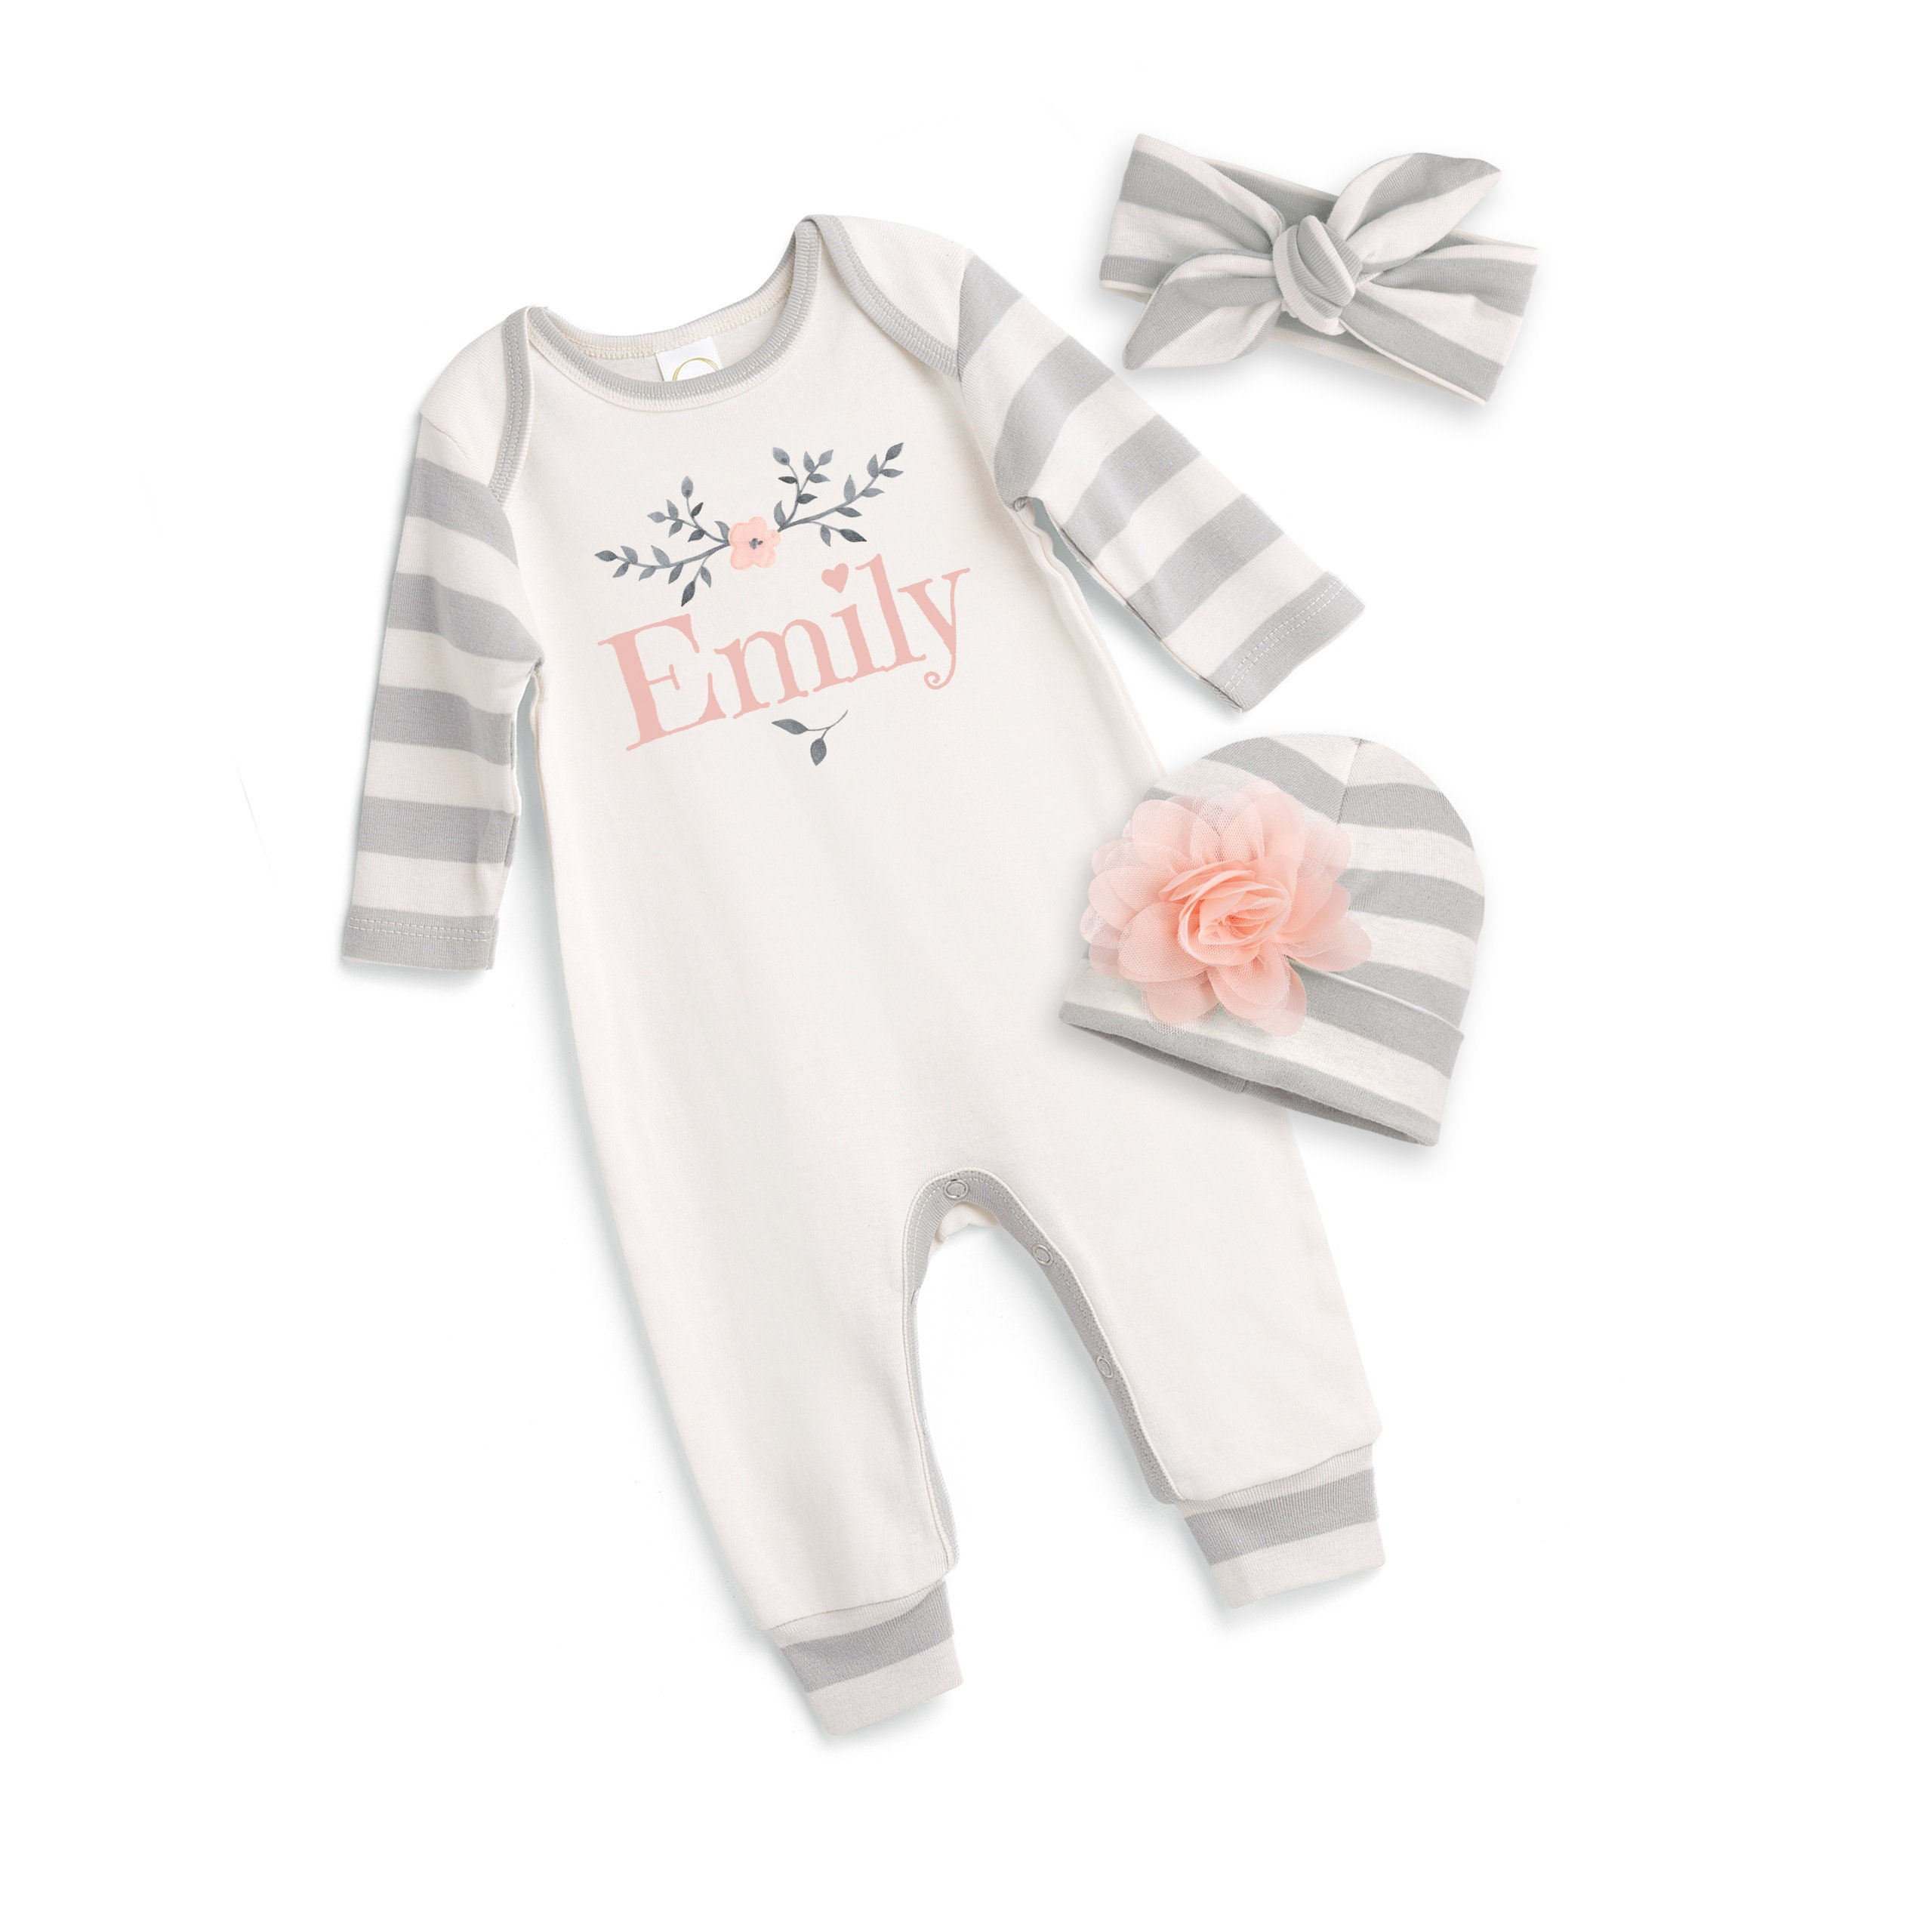 4c1acec7a115 Personalized Newborn Girl Coming Home Outfit